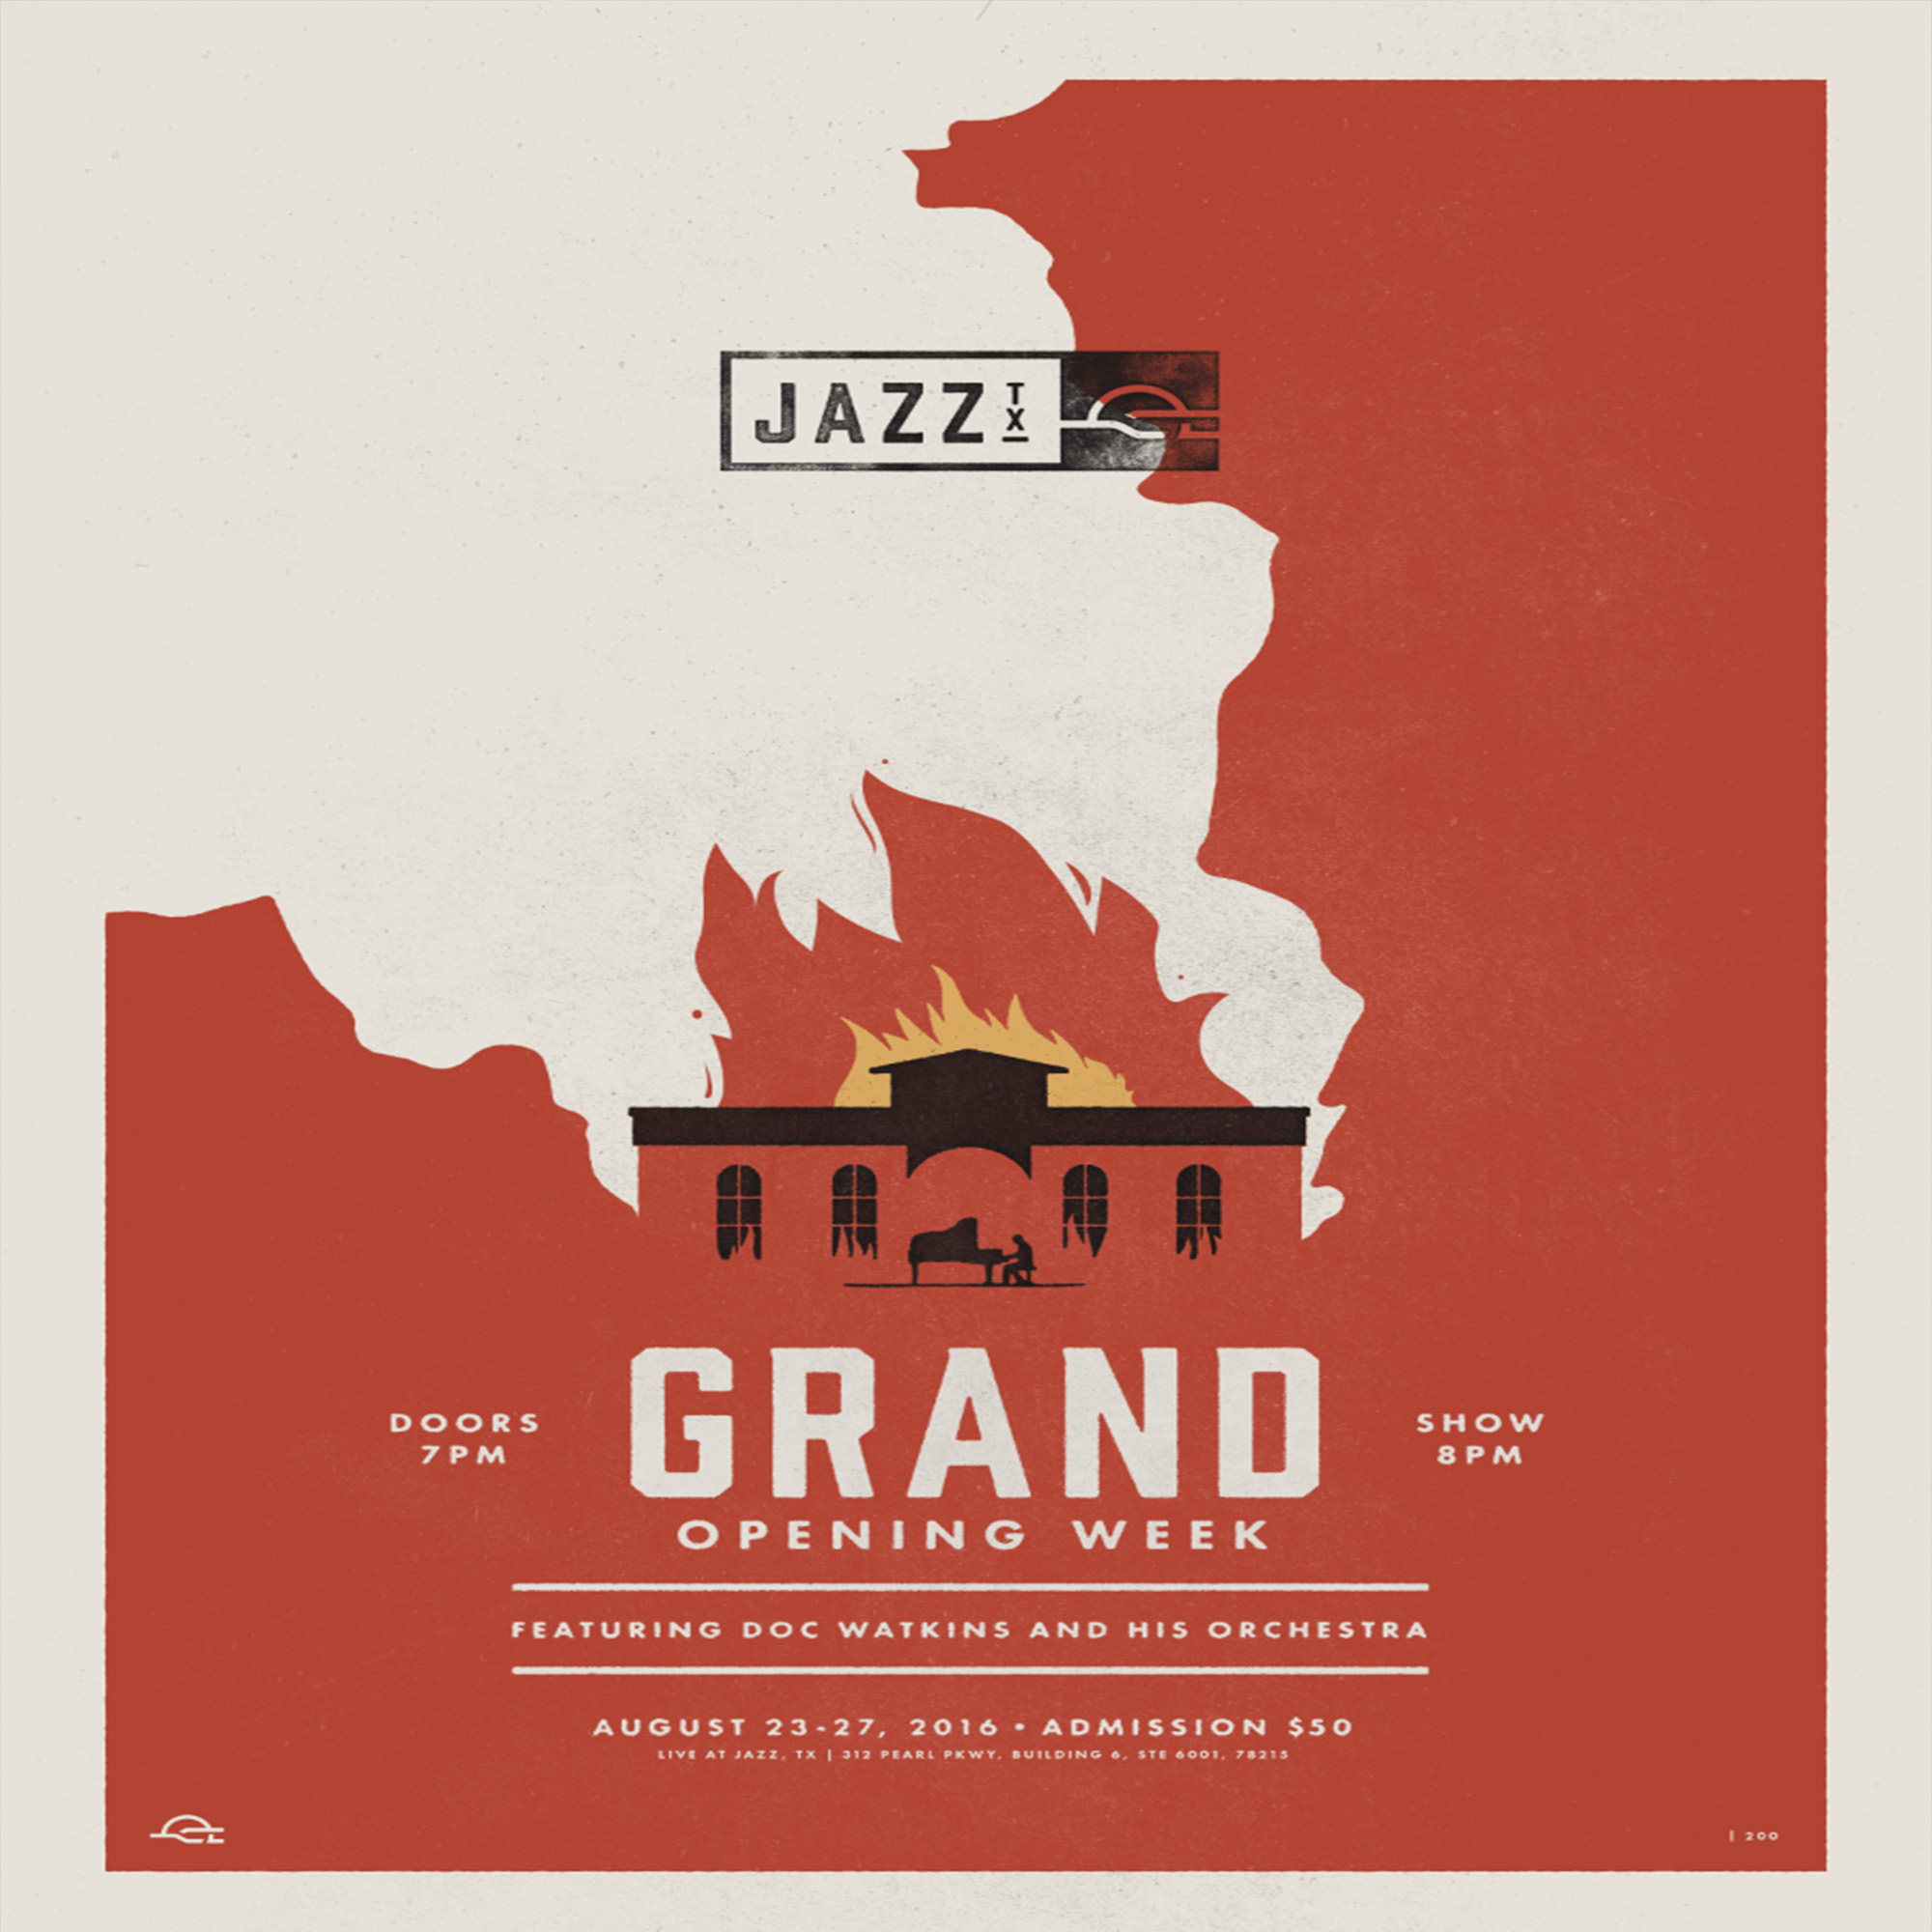 jazz tx grand opening poster limited quantity jazz tx